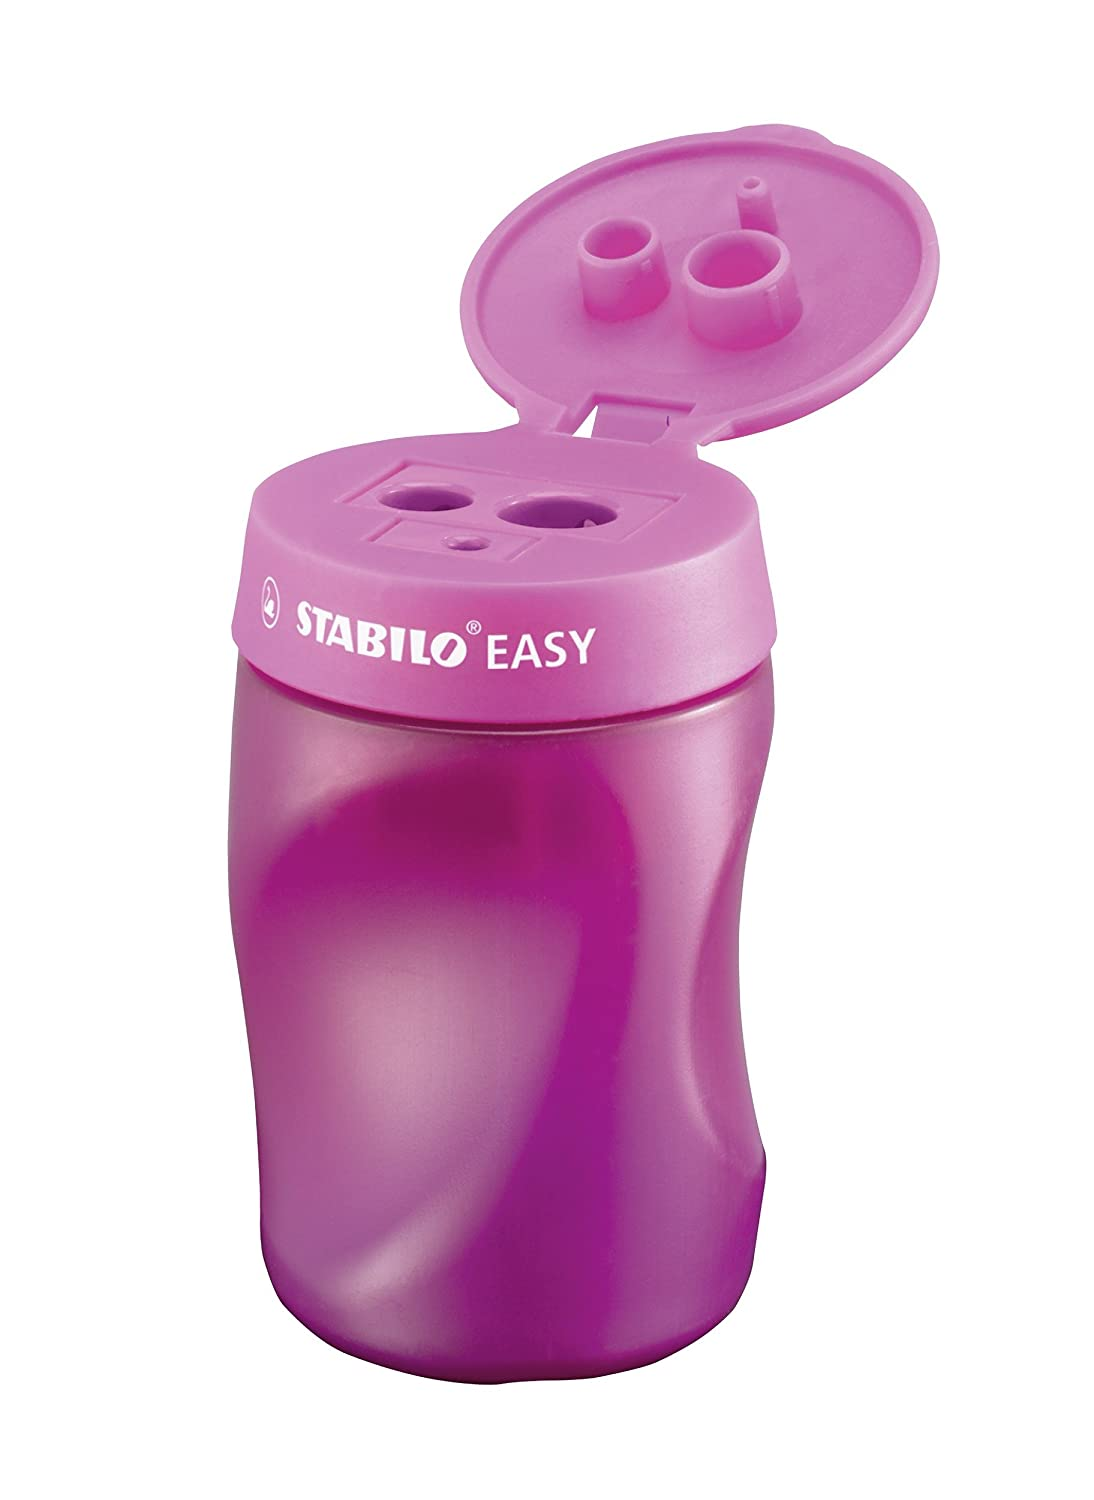 STABILO Easy Sharpener Right Handed - Pink 4502/1